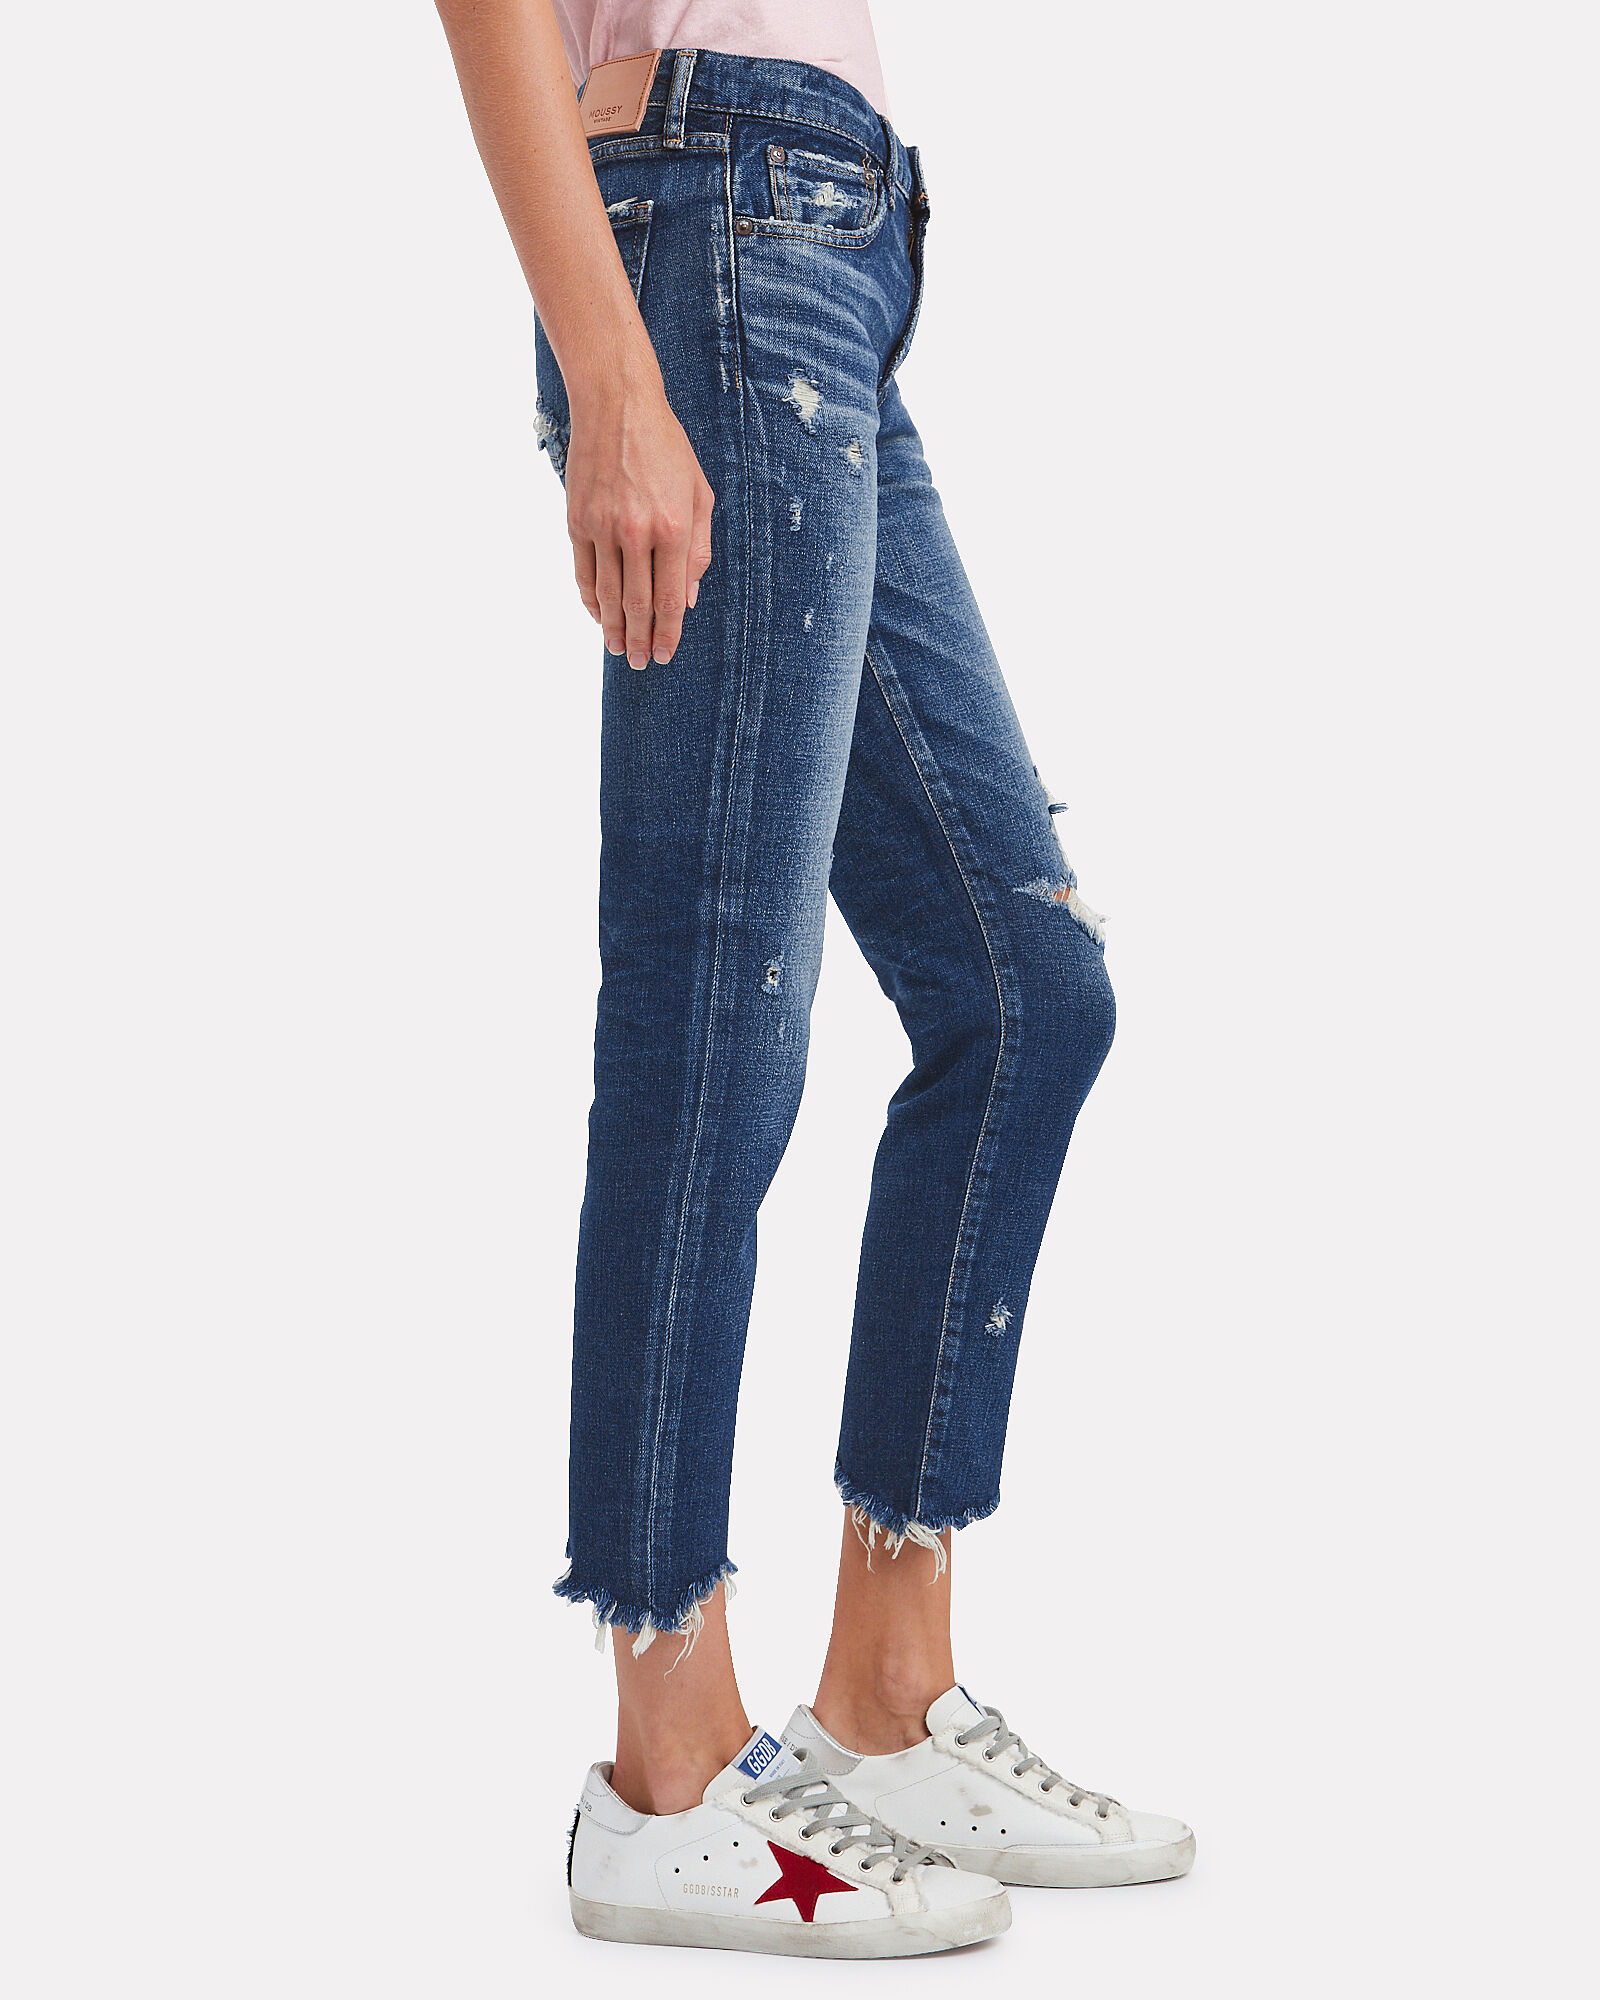 Glendele Distressed Skinny Jeans, DENIM, hi-res